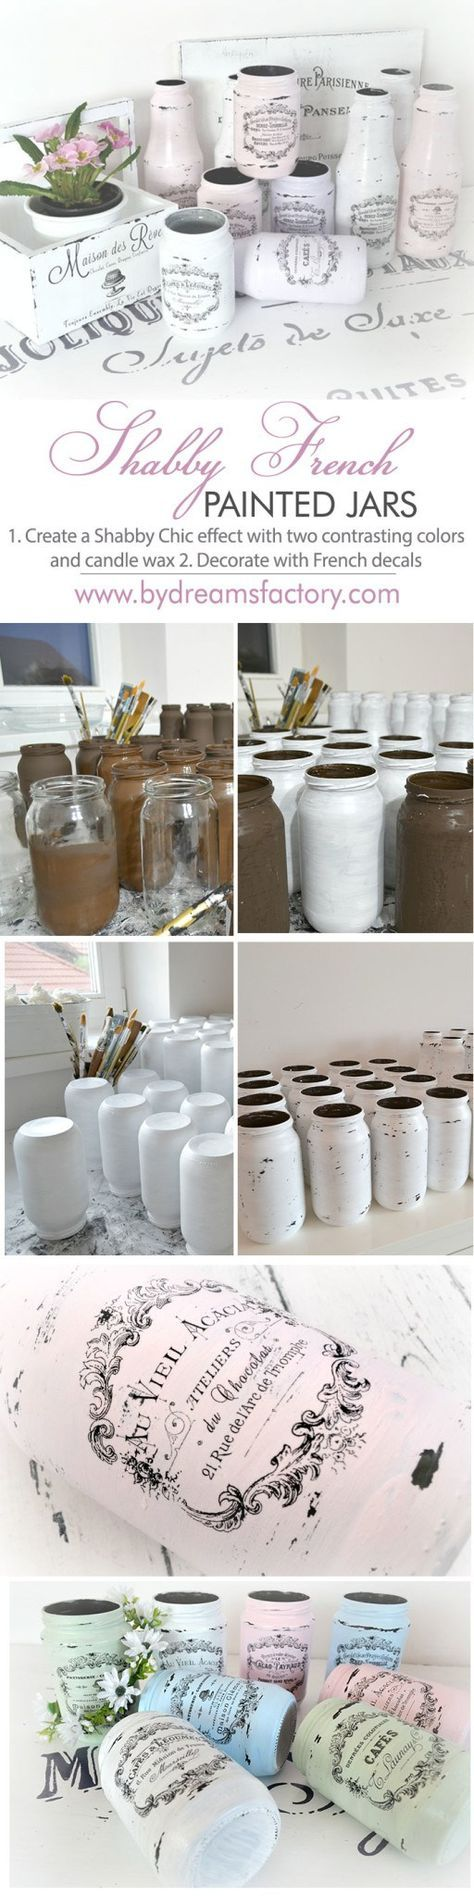 DIY: How to Paint and Apply French Decals to Glass - Shabby French Painted Jars - tutorials show how to paint and distress jars, then how to create decals using graphics from The Graphics Fairy - via By Dreams Factory